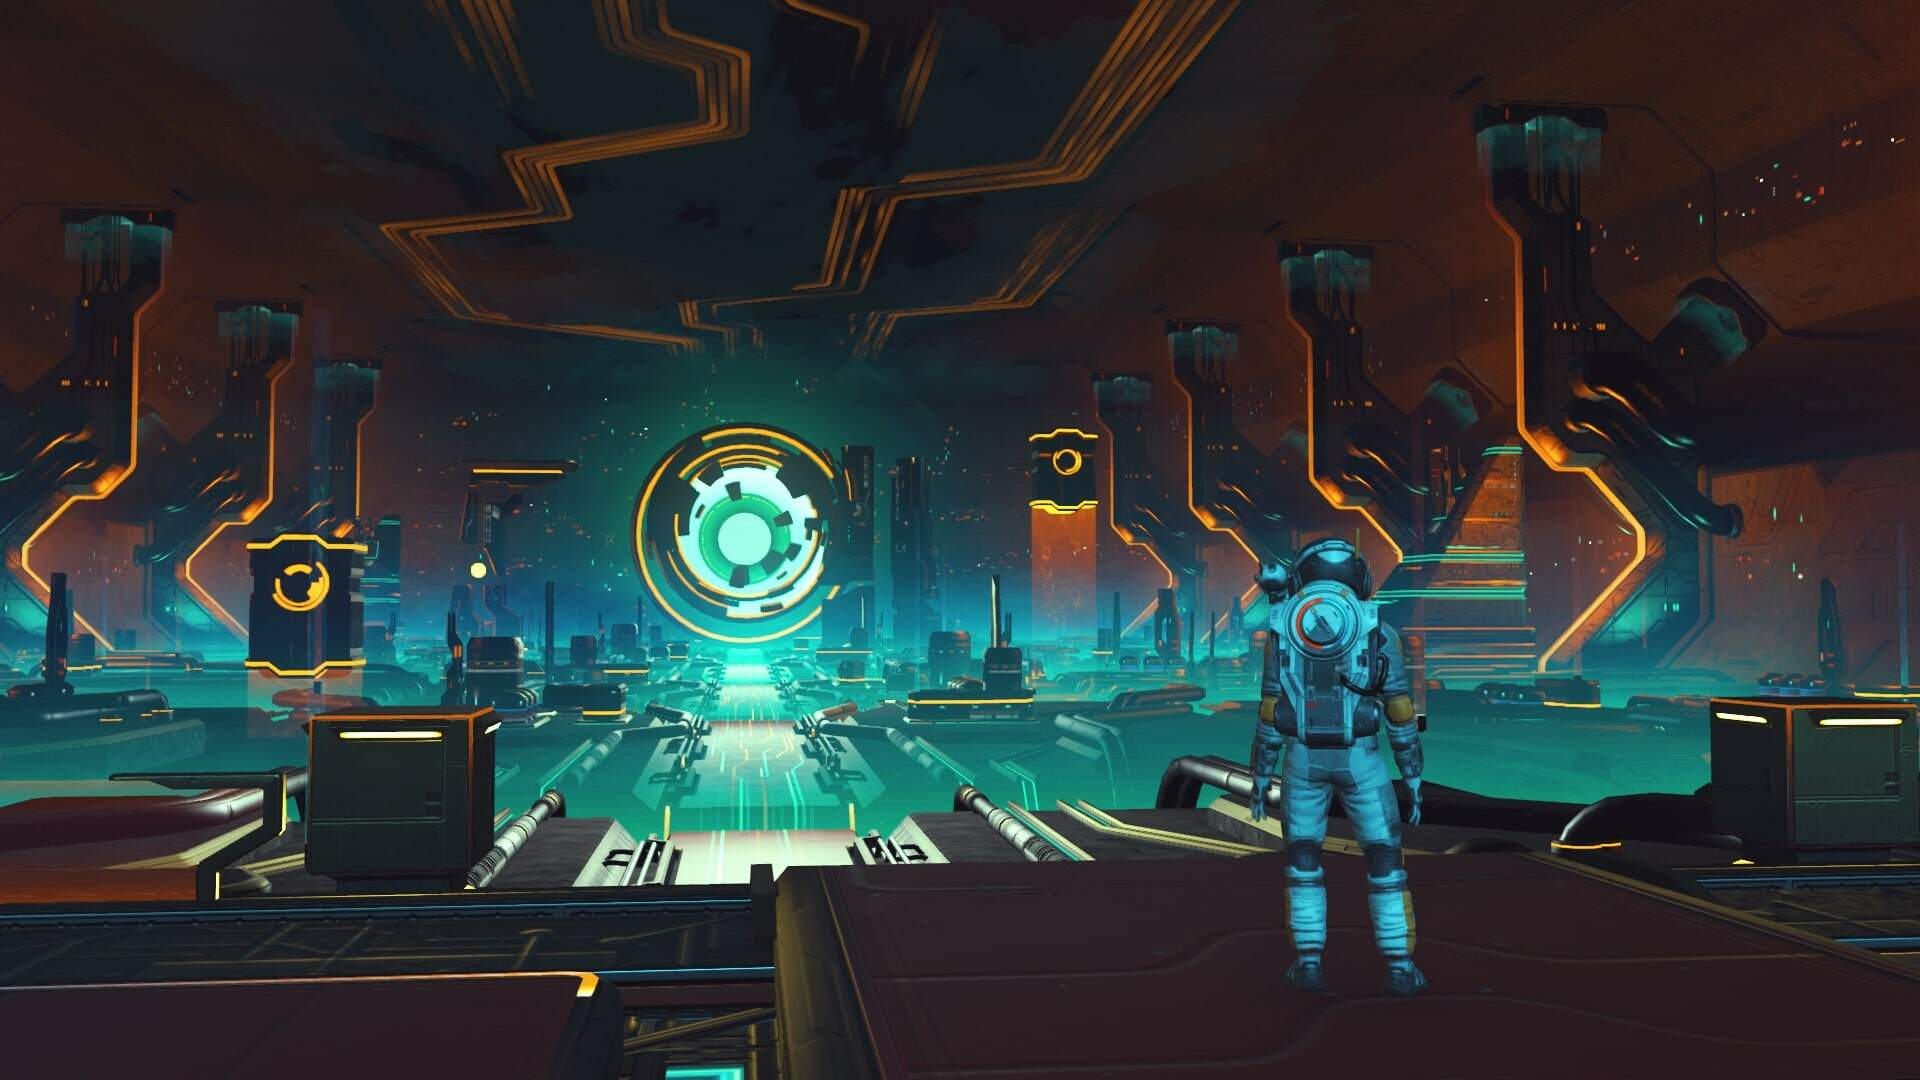 No Man's Sky Nexus: Nexus Social Hub, Multiplayer Missions, Construction Research Terminal - Everything You Need to Know